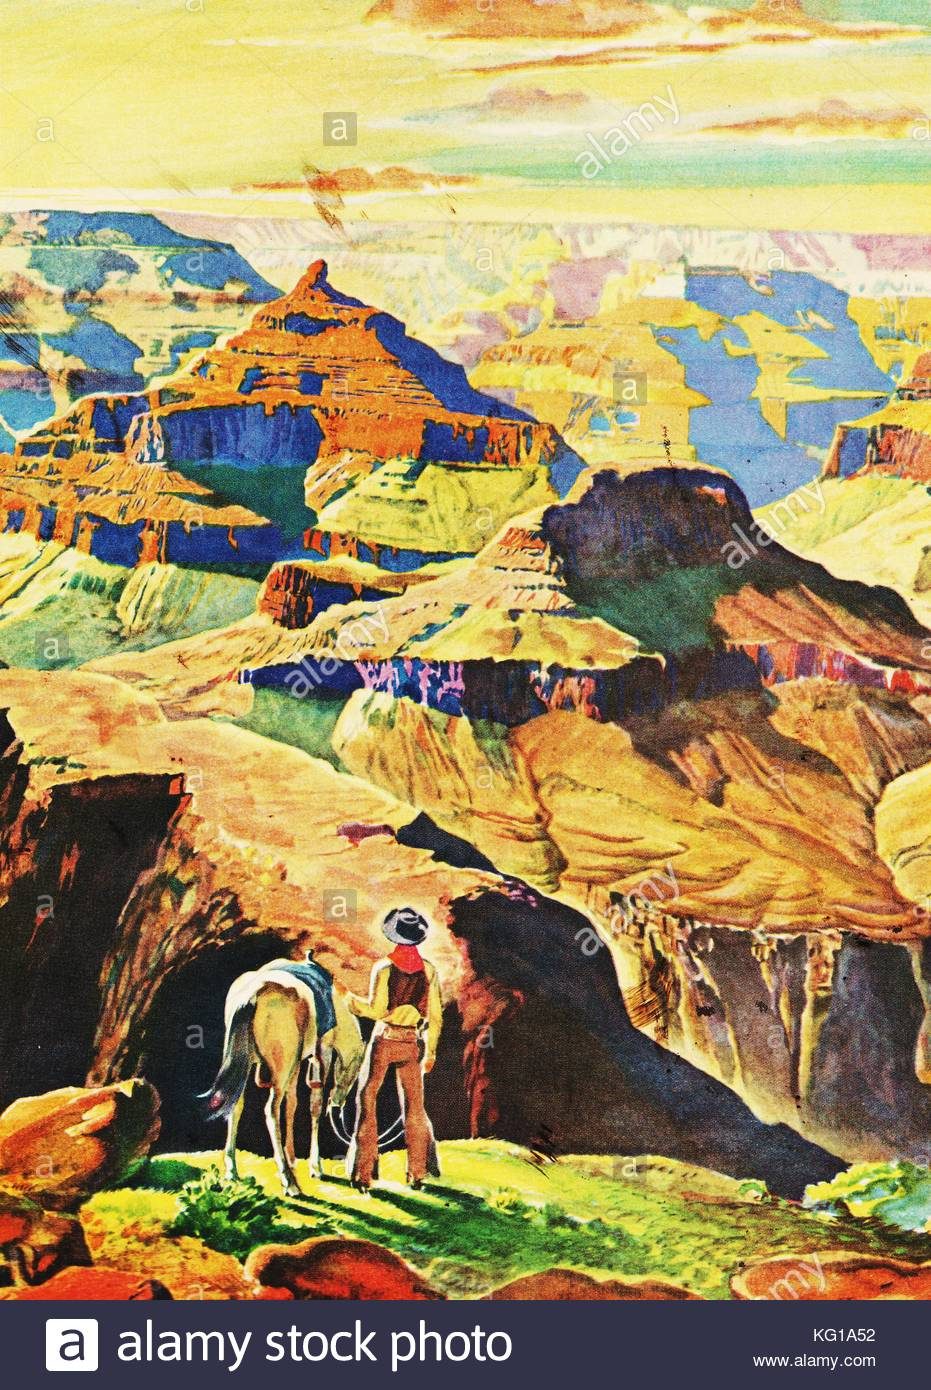 Grand Canyon, Arizona in a painting showing a young man with his ...